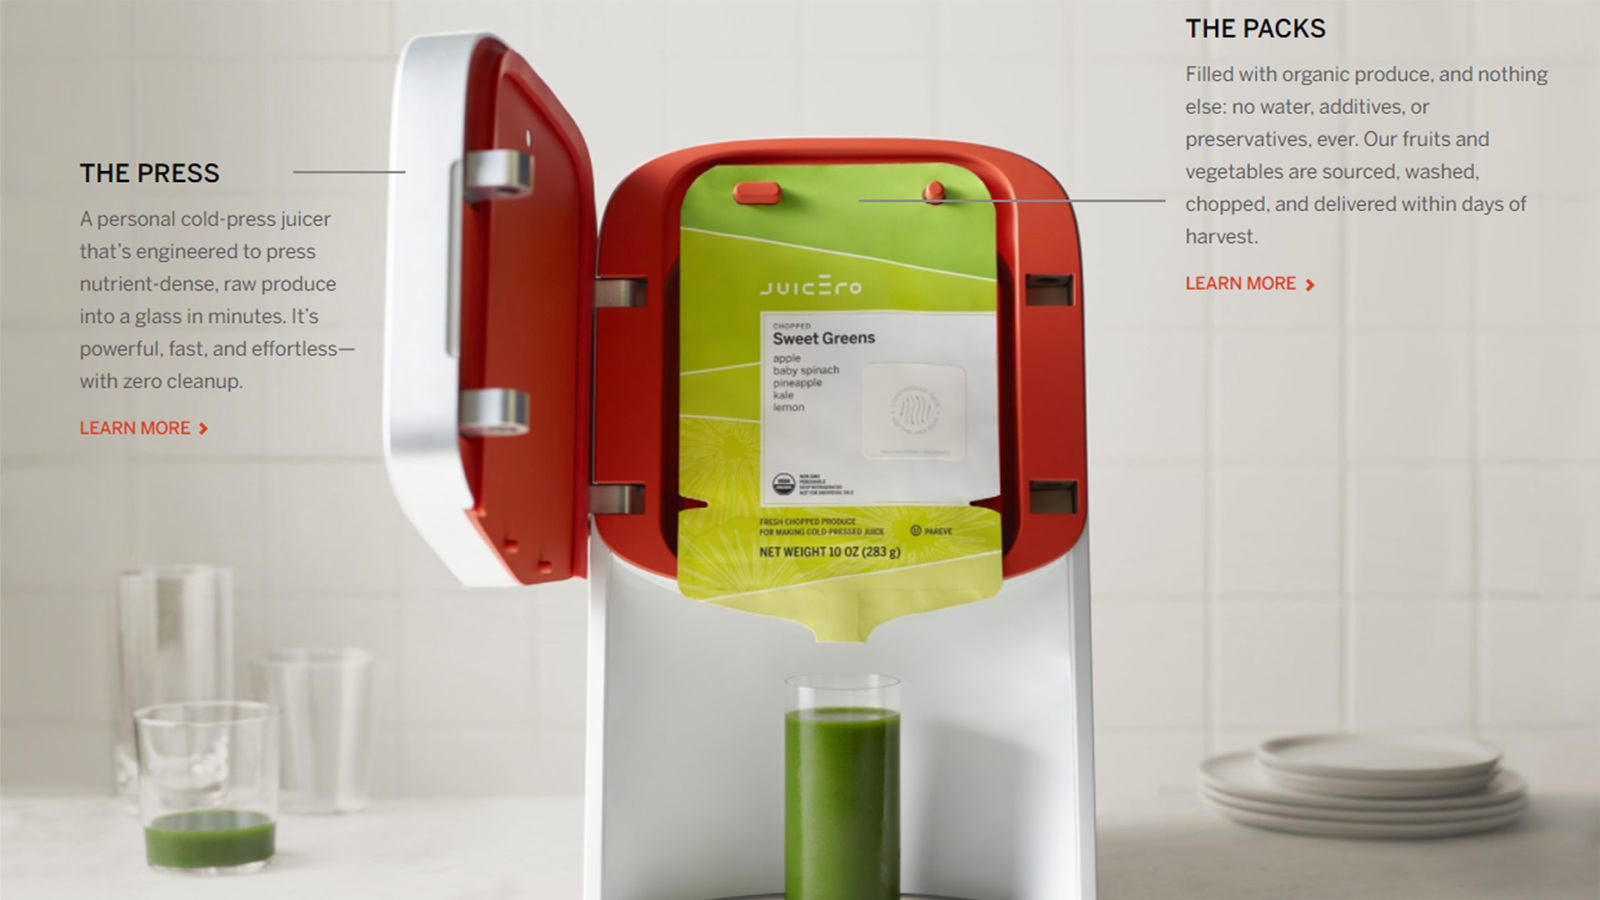 The Juicero with some annotations